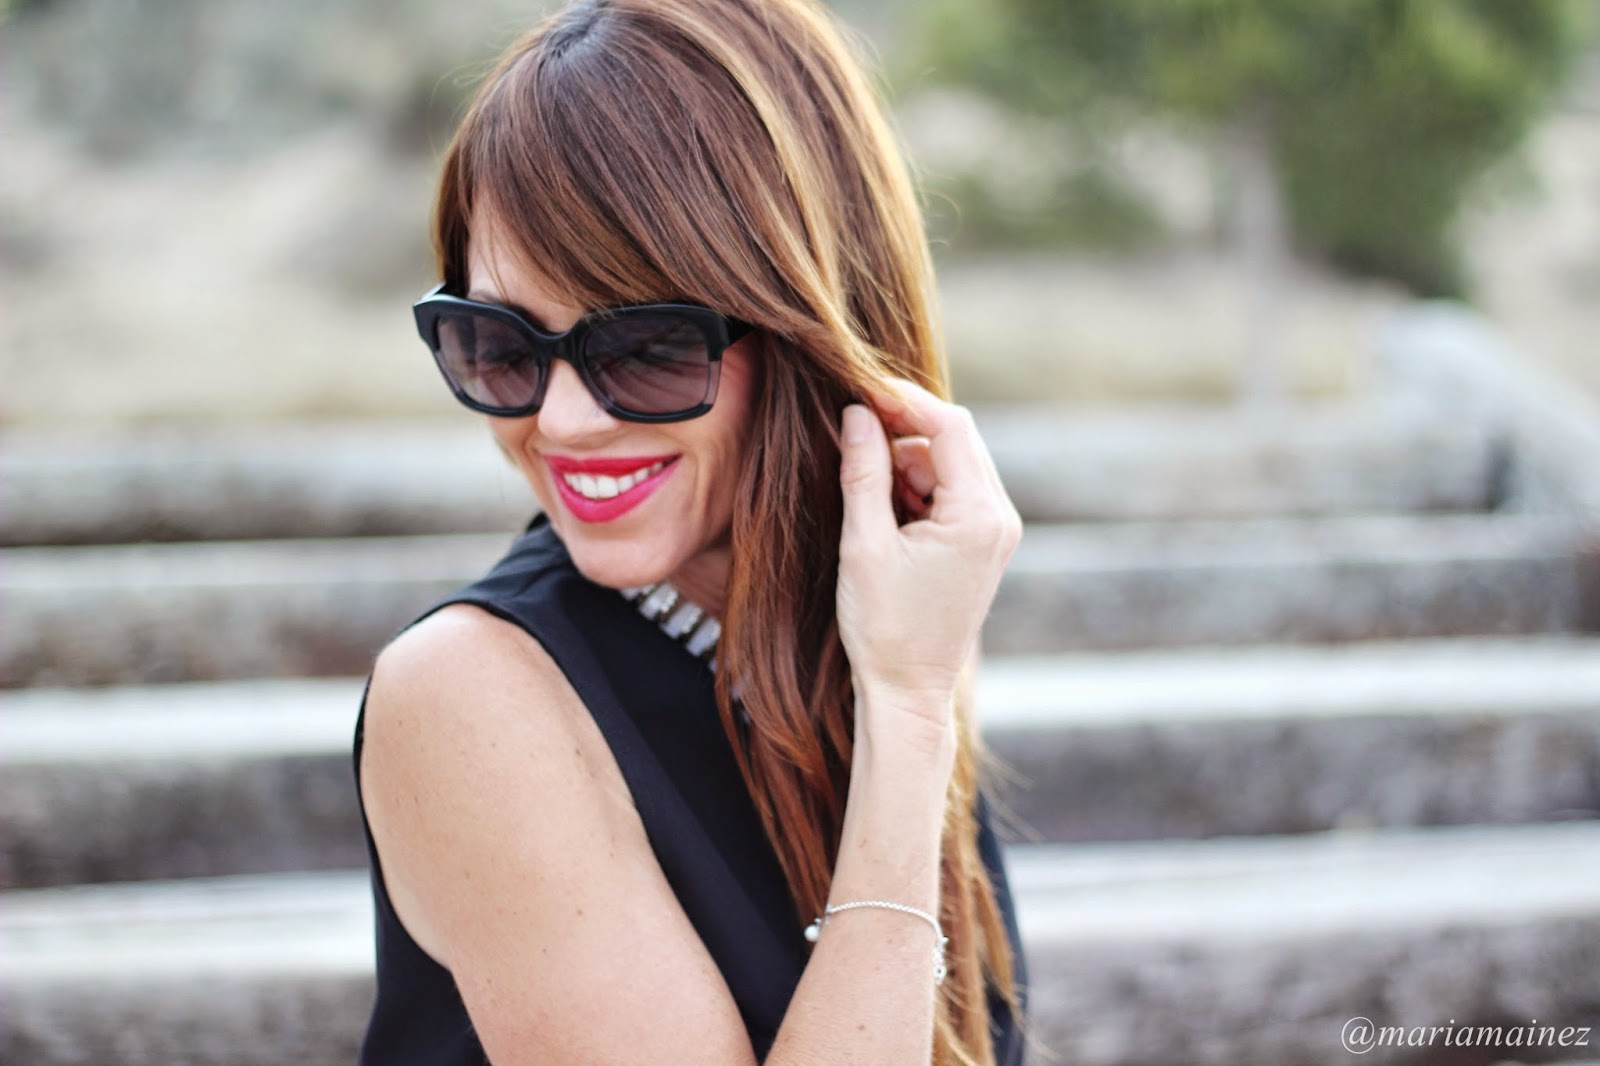 Sunnies - Tendencias gafas de sol 2015 - fashion blogger